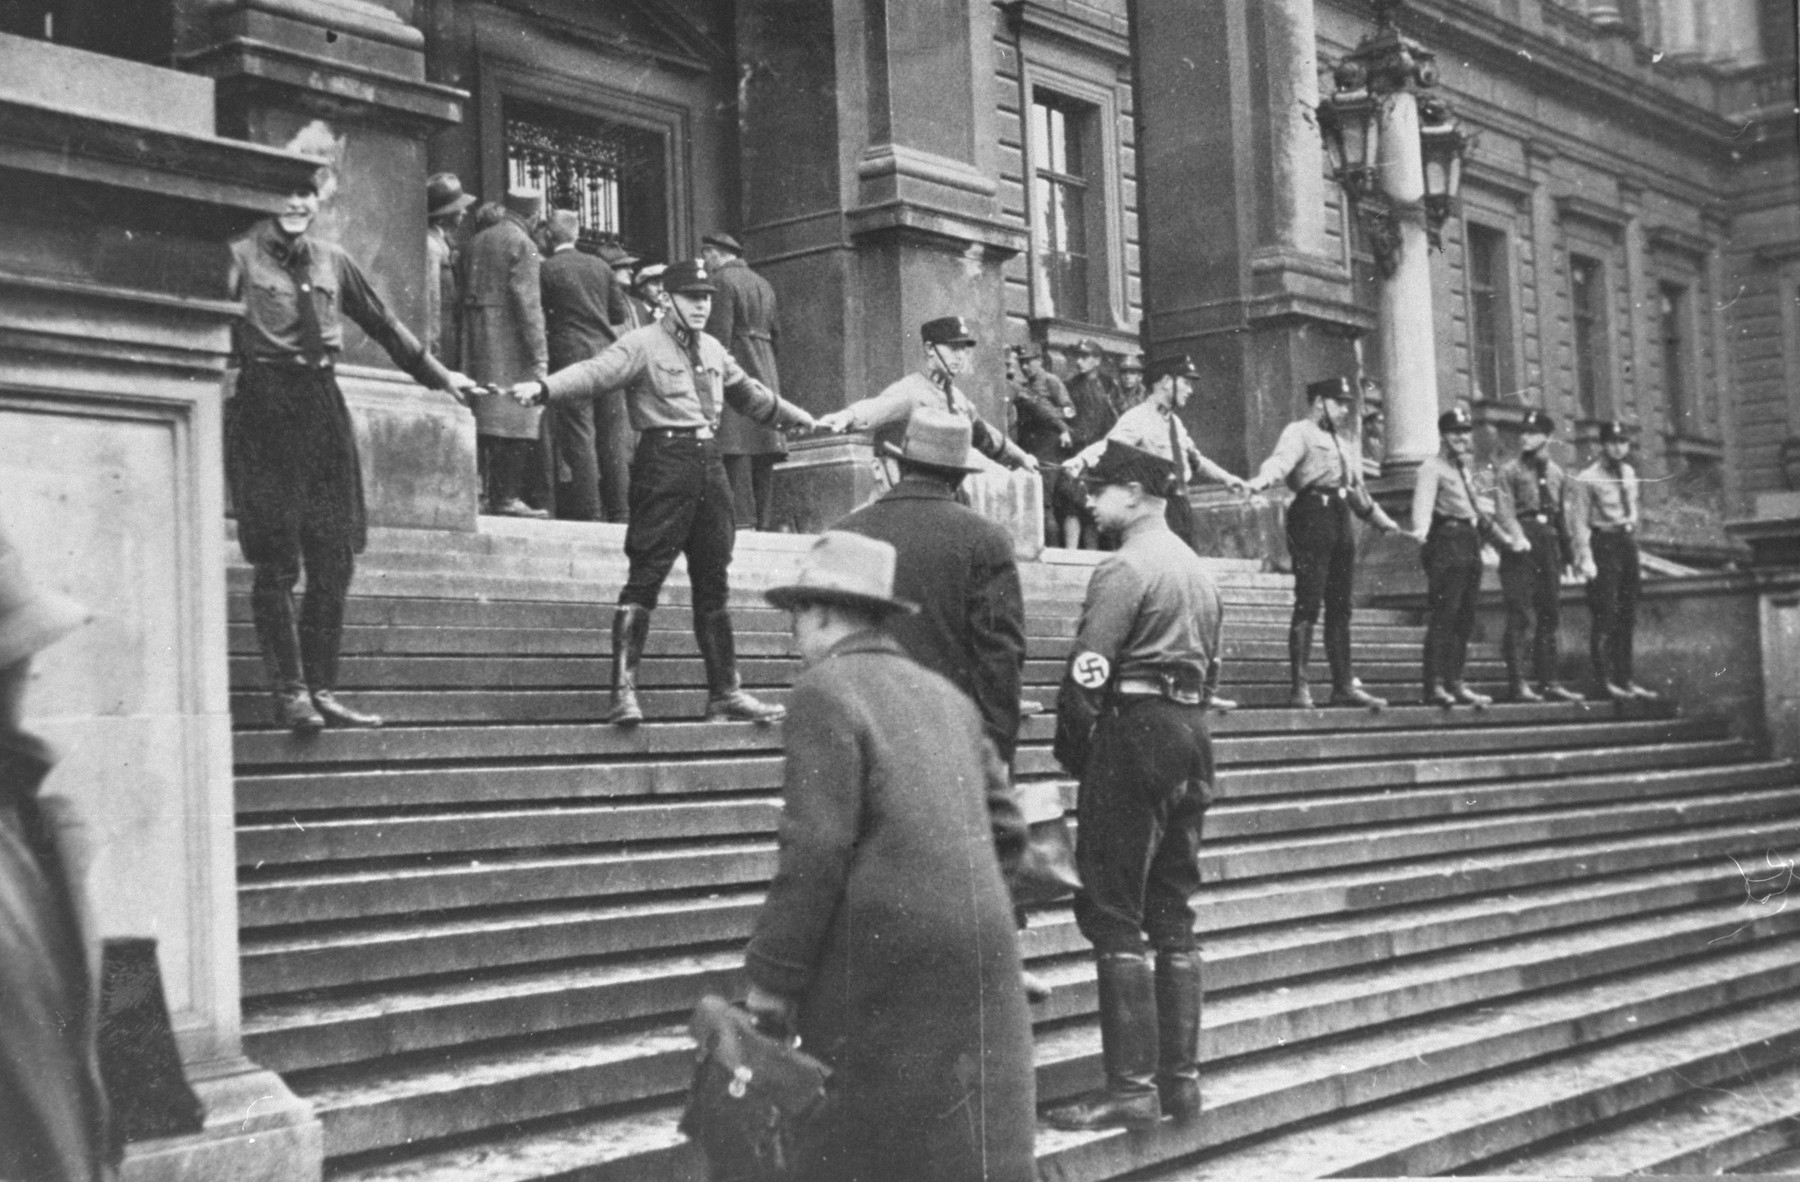 A group of SA hold hands on the steps of the University of Vienna in an attempt to prevent Jews from entering the building.  The action led to a day of student rioting, which had to be suppressed by police.